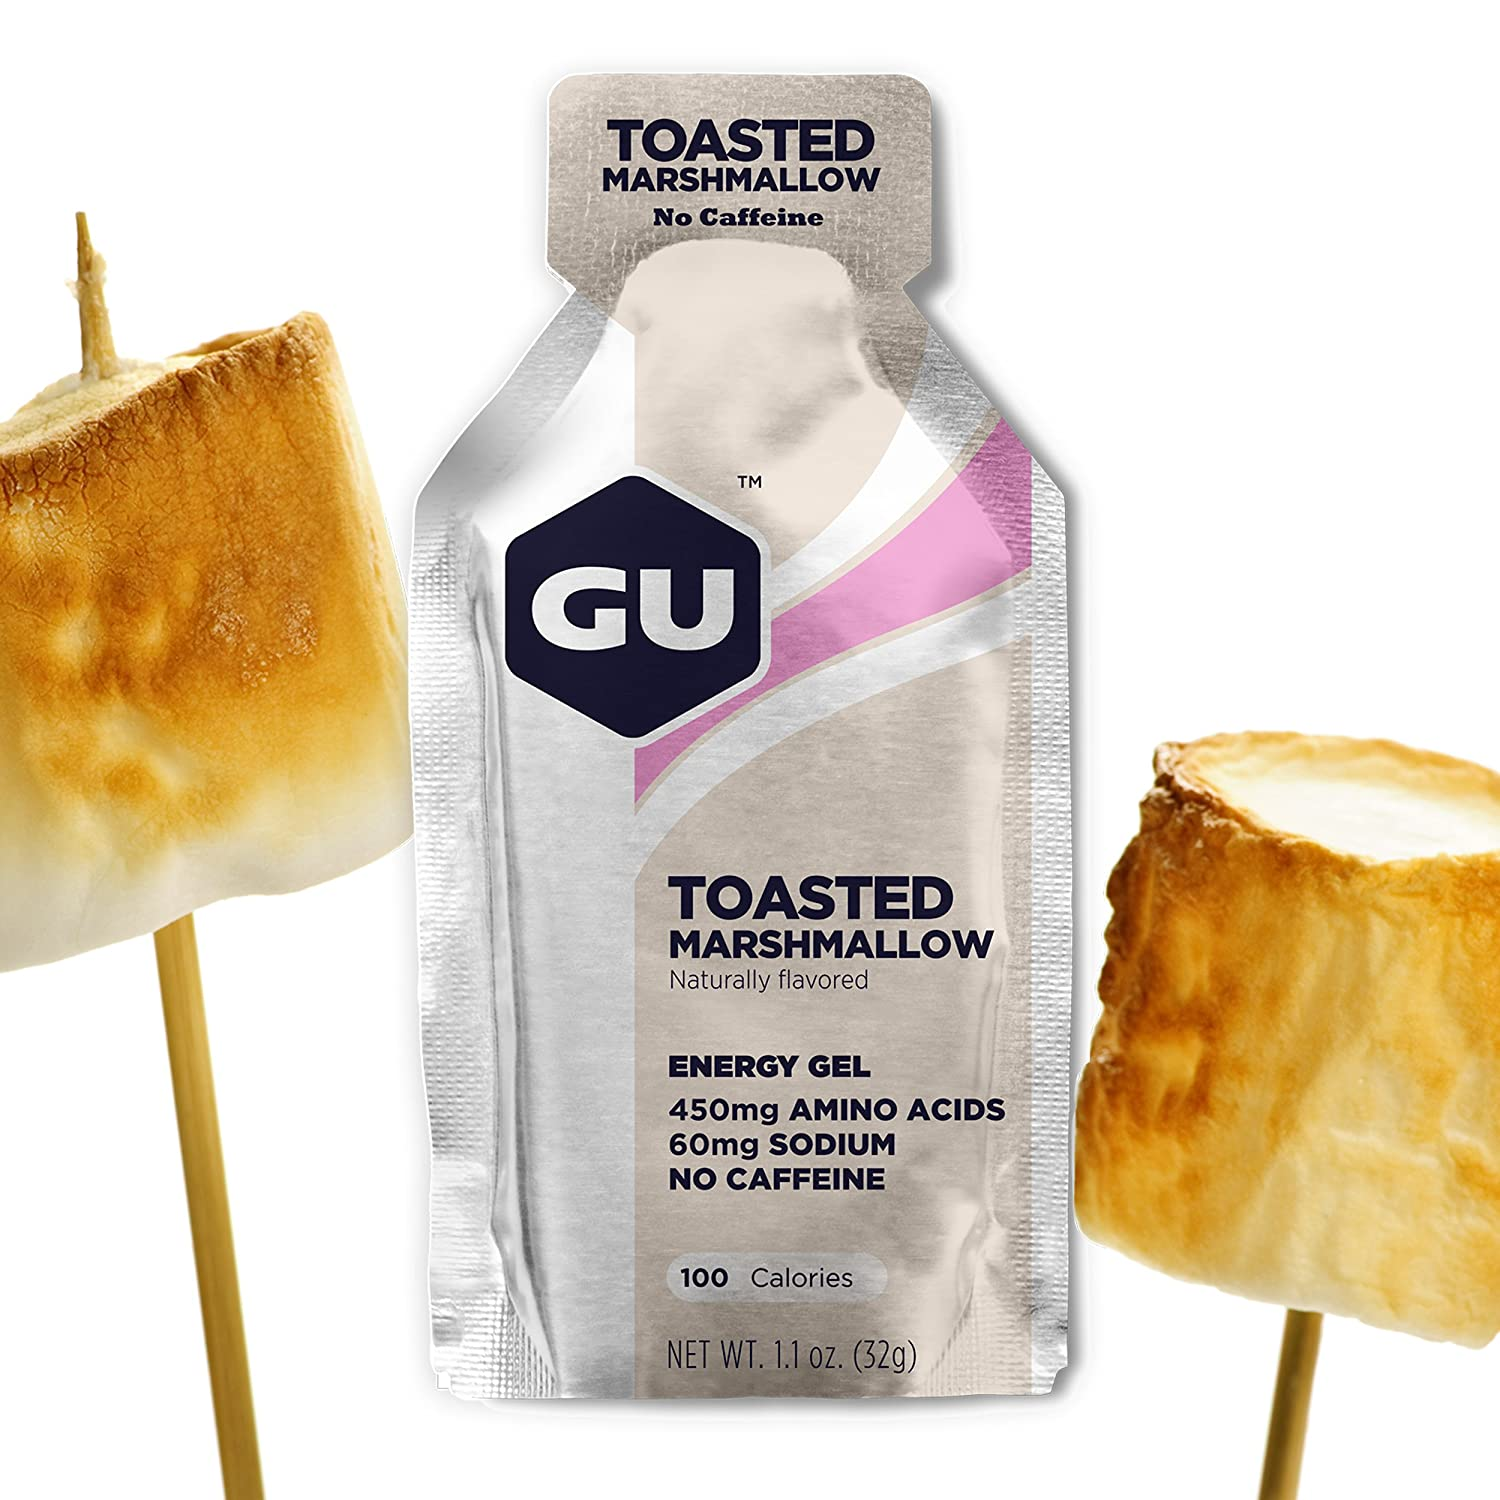 Love marshmallows. Does the caloric content of the product matter